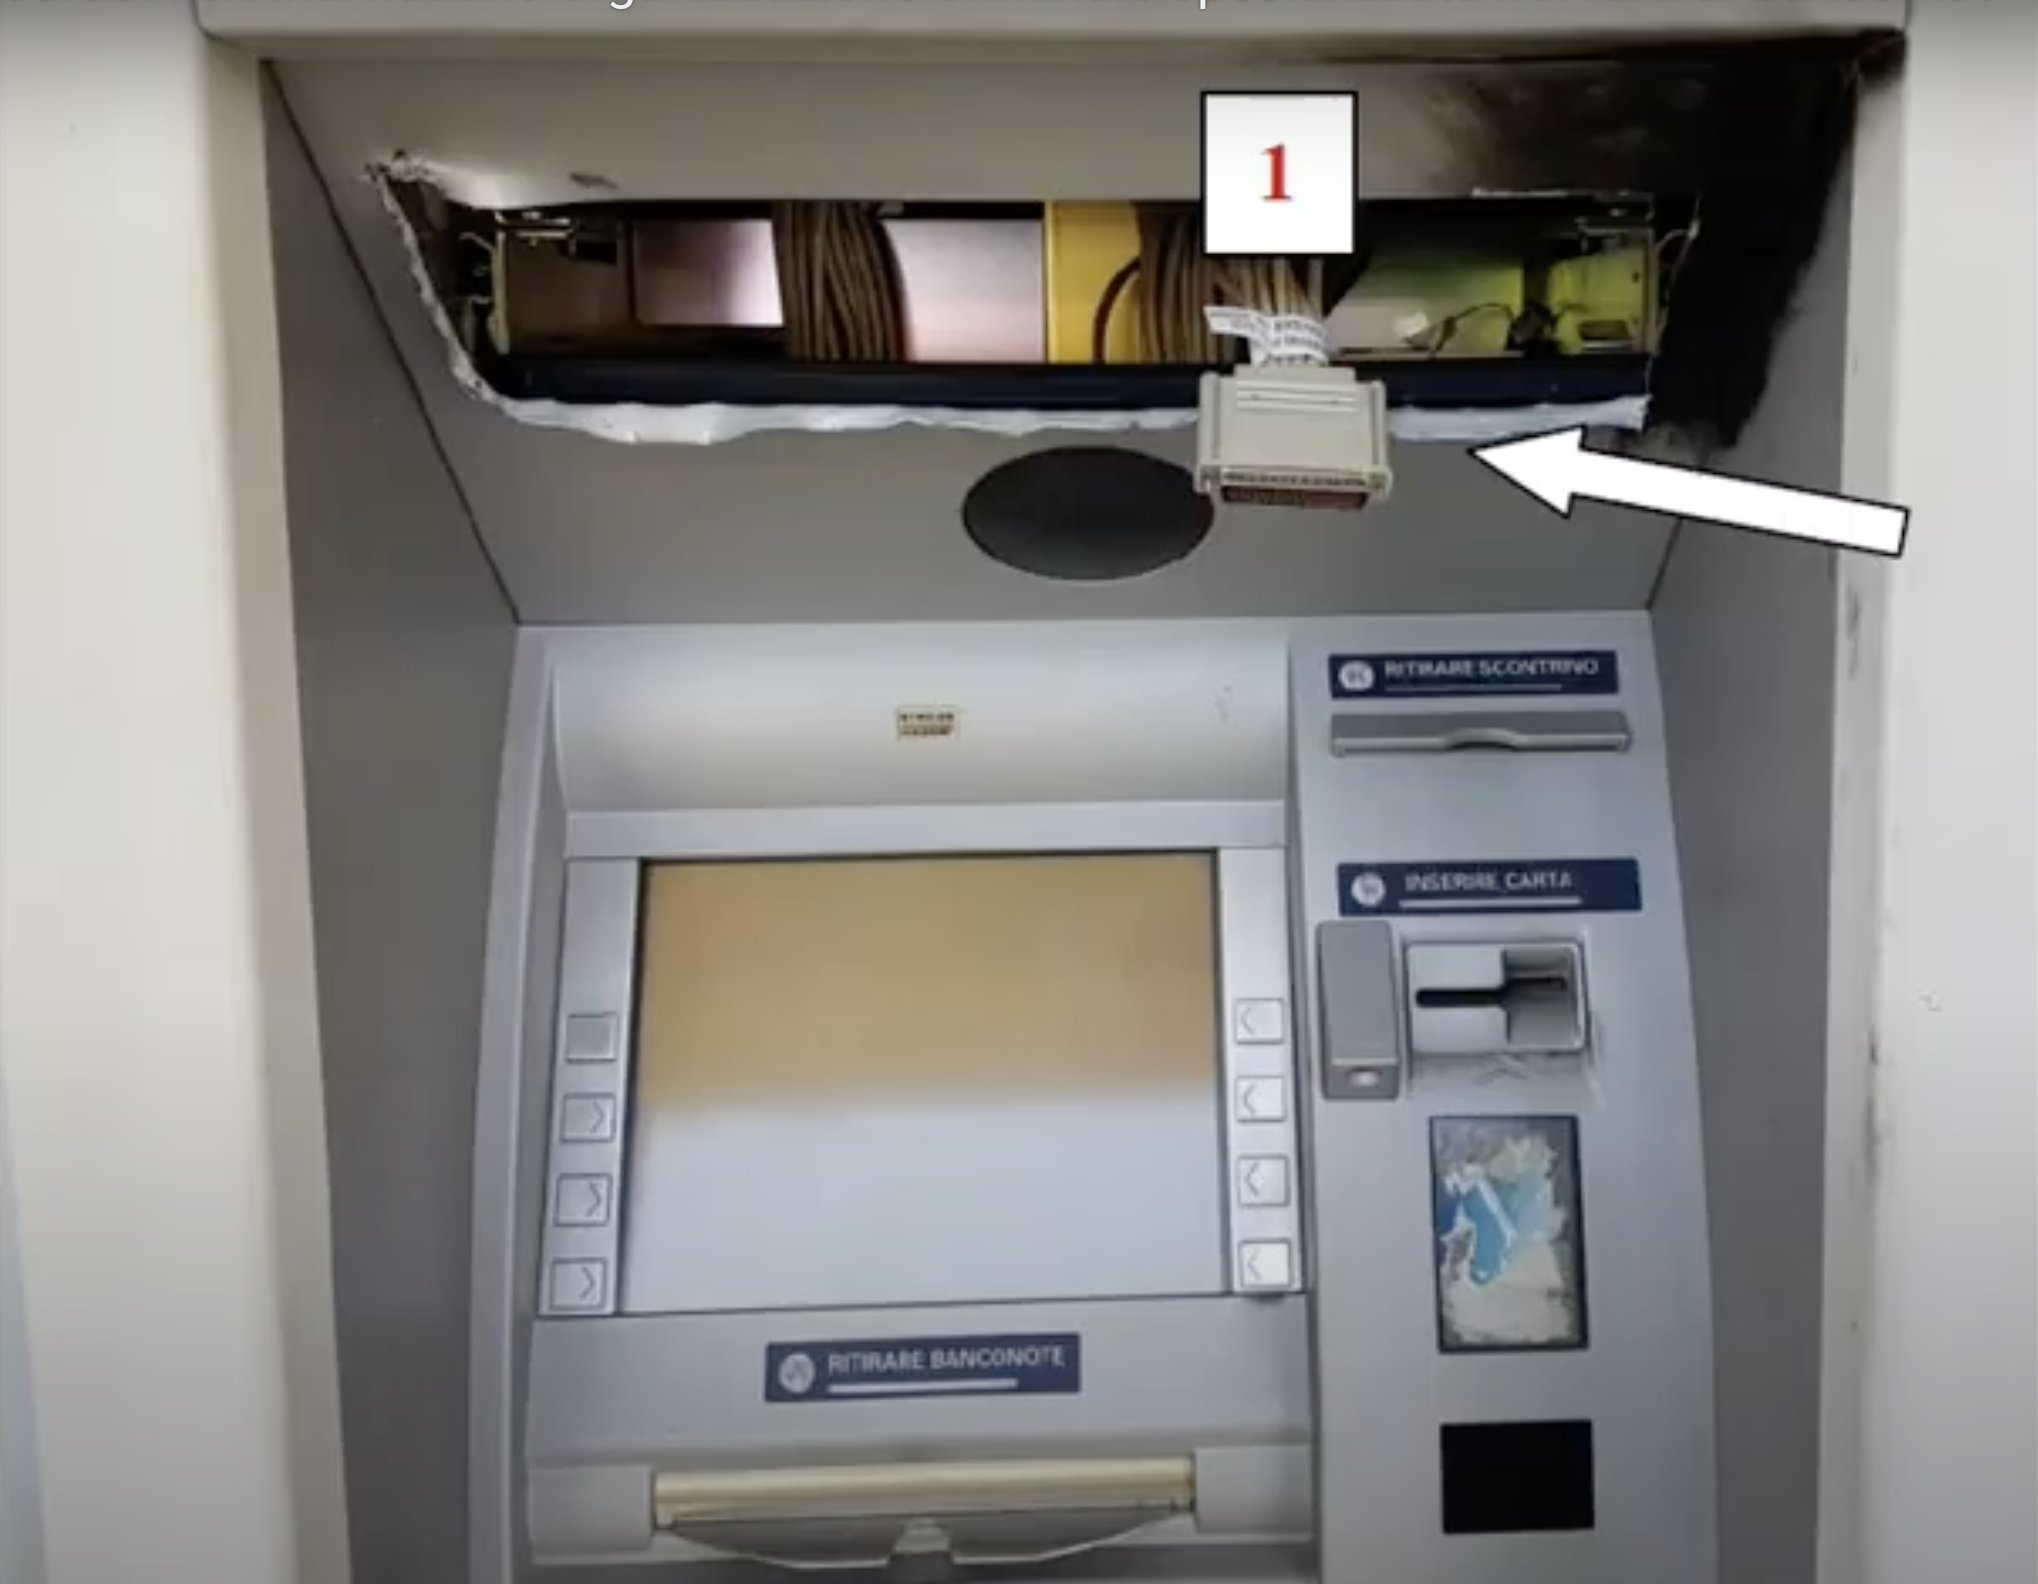 Crooks stole 800,000€ from ATMs in Italy with Black Box attack